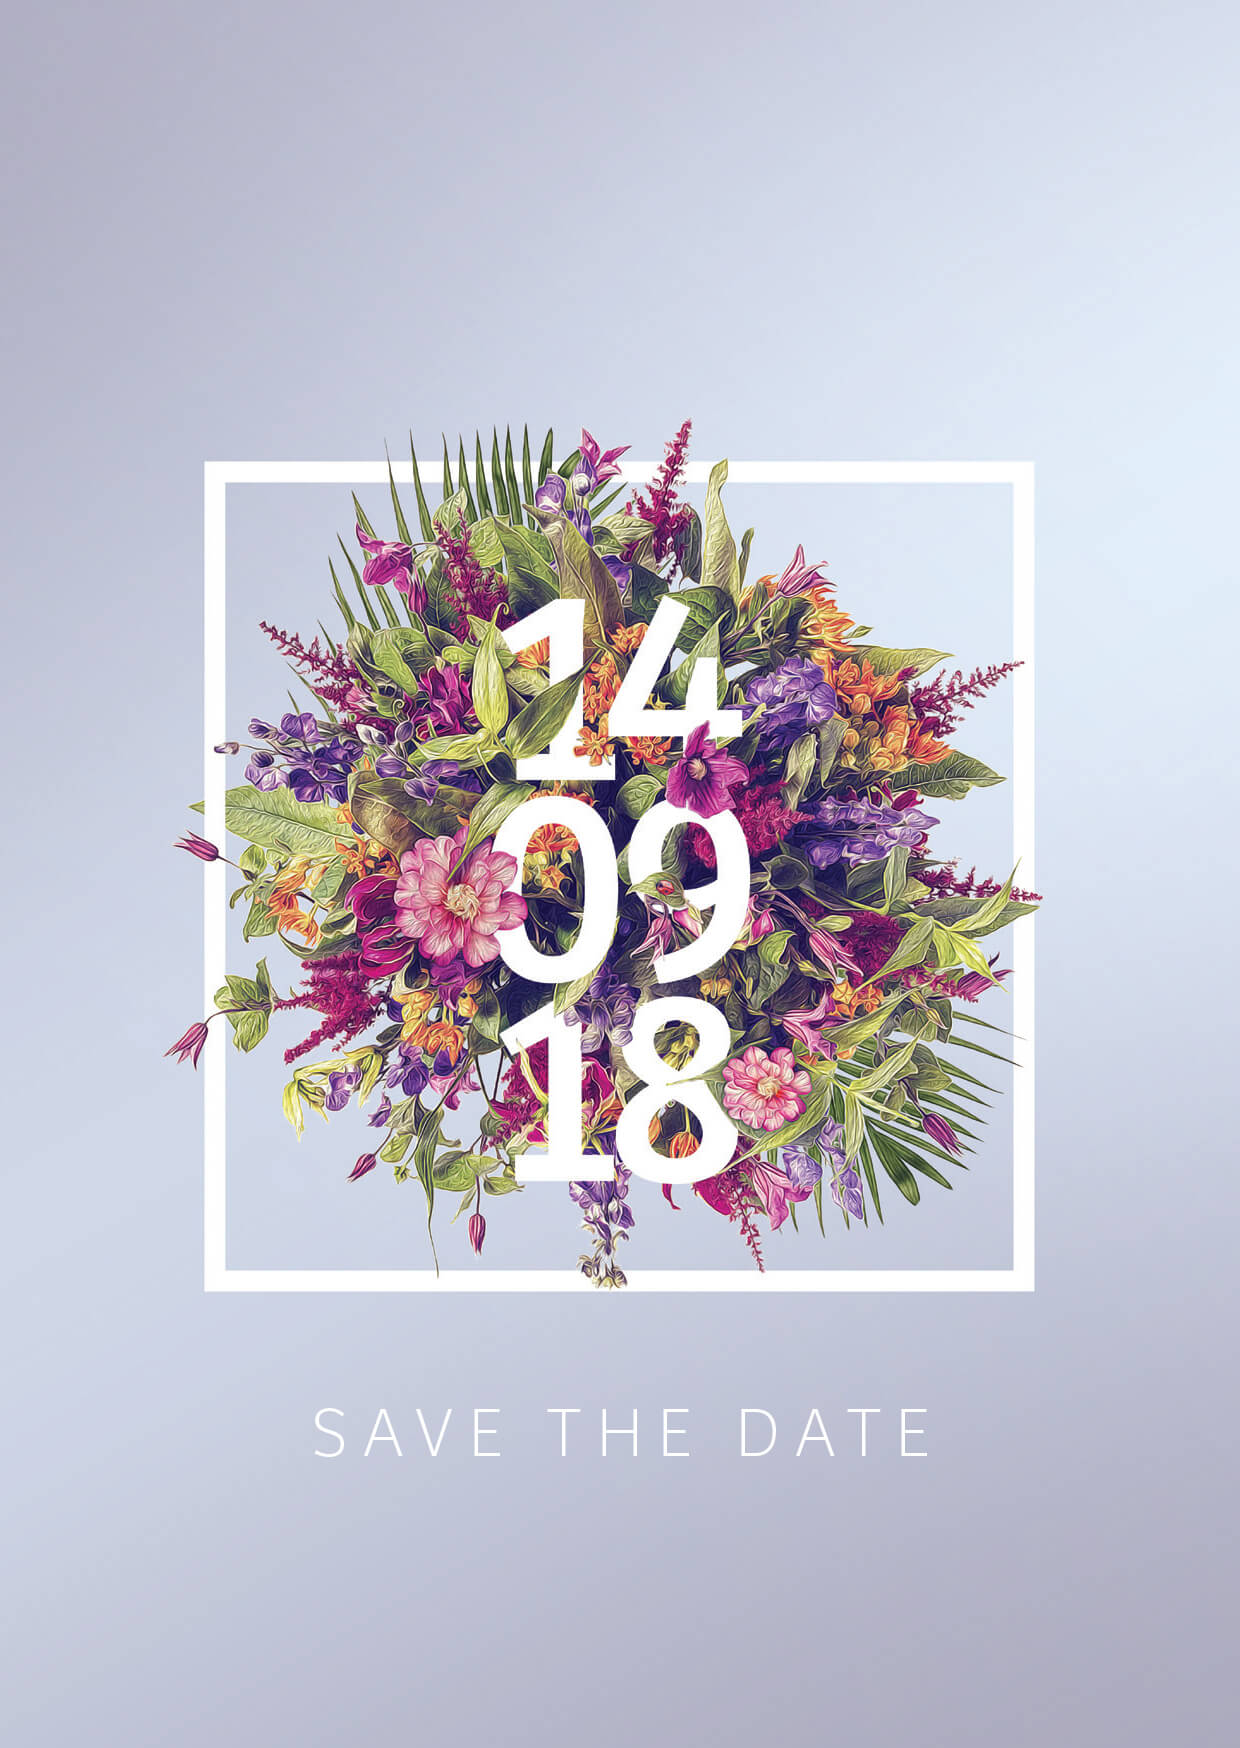 2ppA6-save-the-date-1.jpg